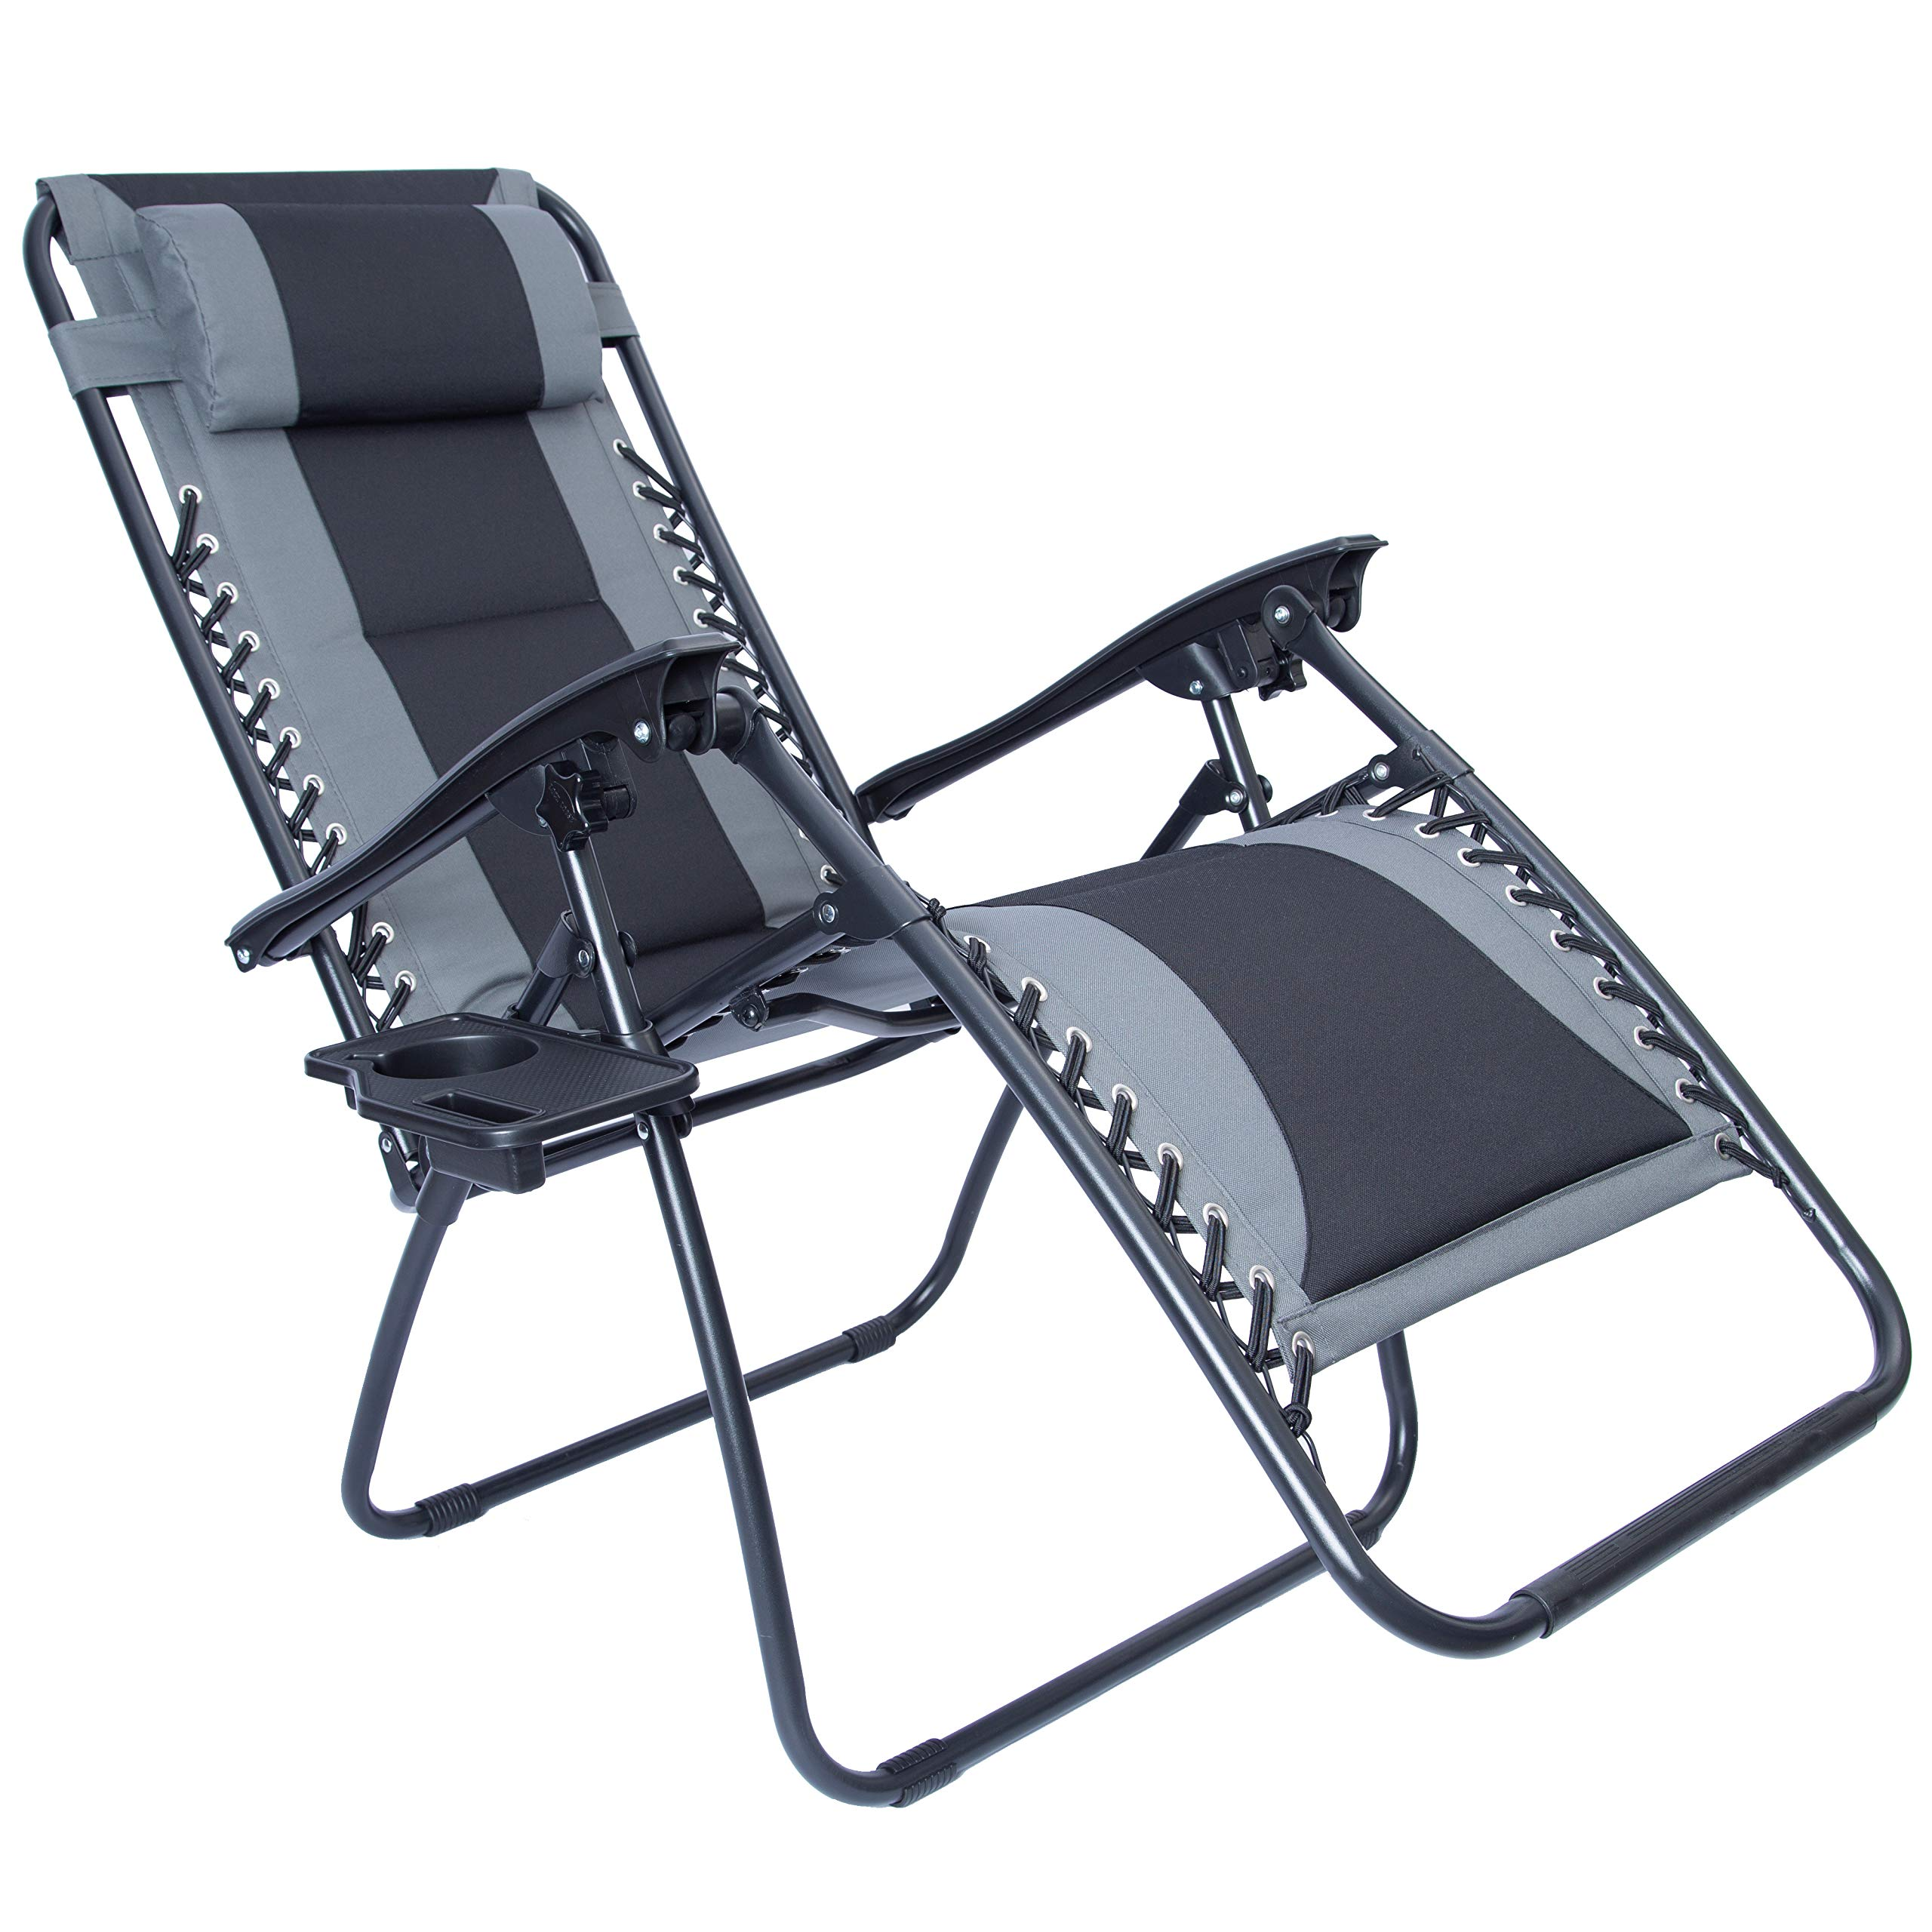 LUCKYBERRY Padded Zero Gravity Lounge Chair Patio Foldable Adjustable Reclining with Cup Holder for Outdoor Yard Porch Grey by LUCKYBERRY